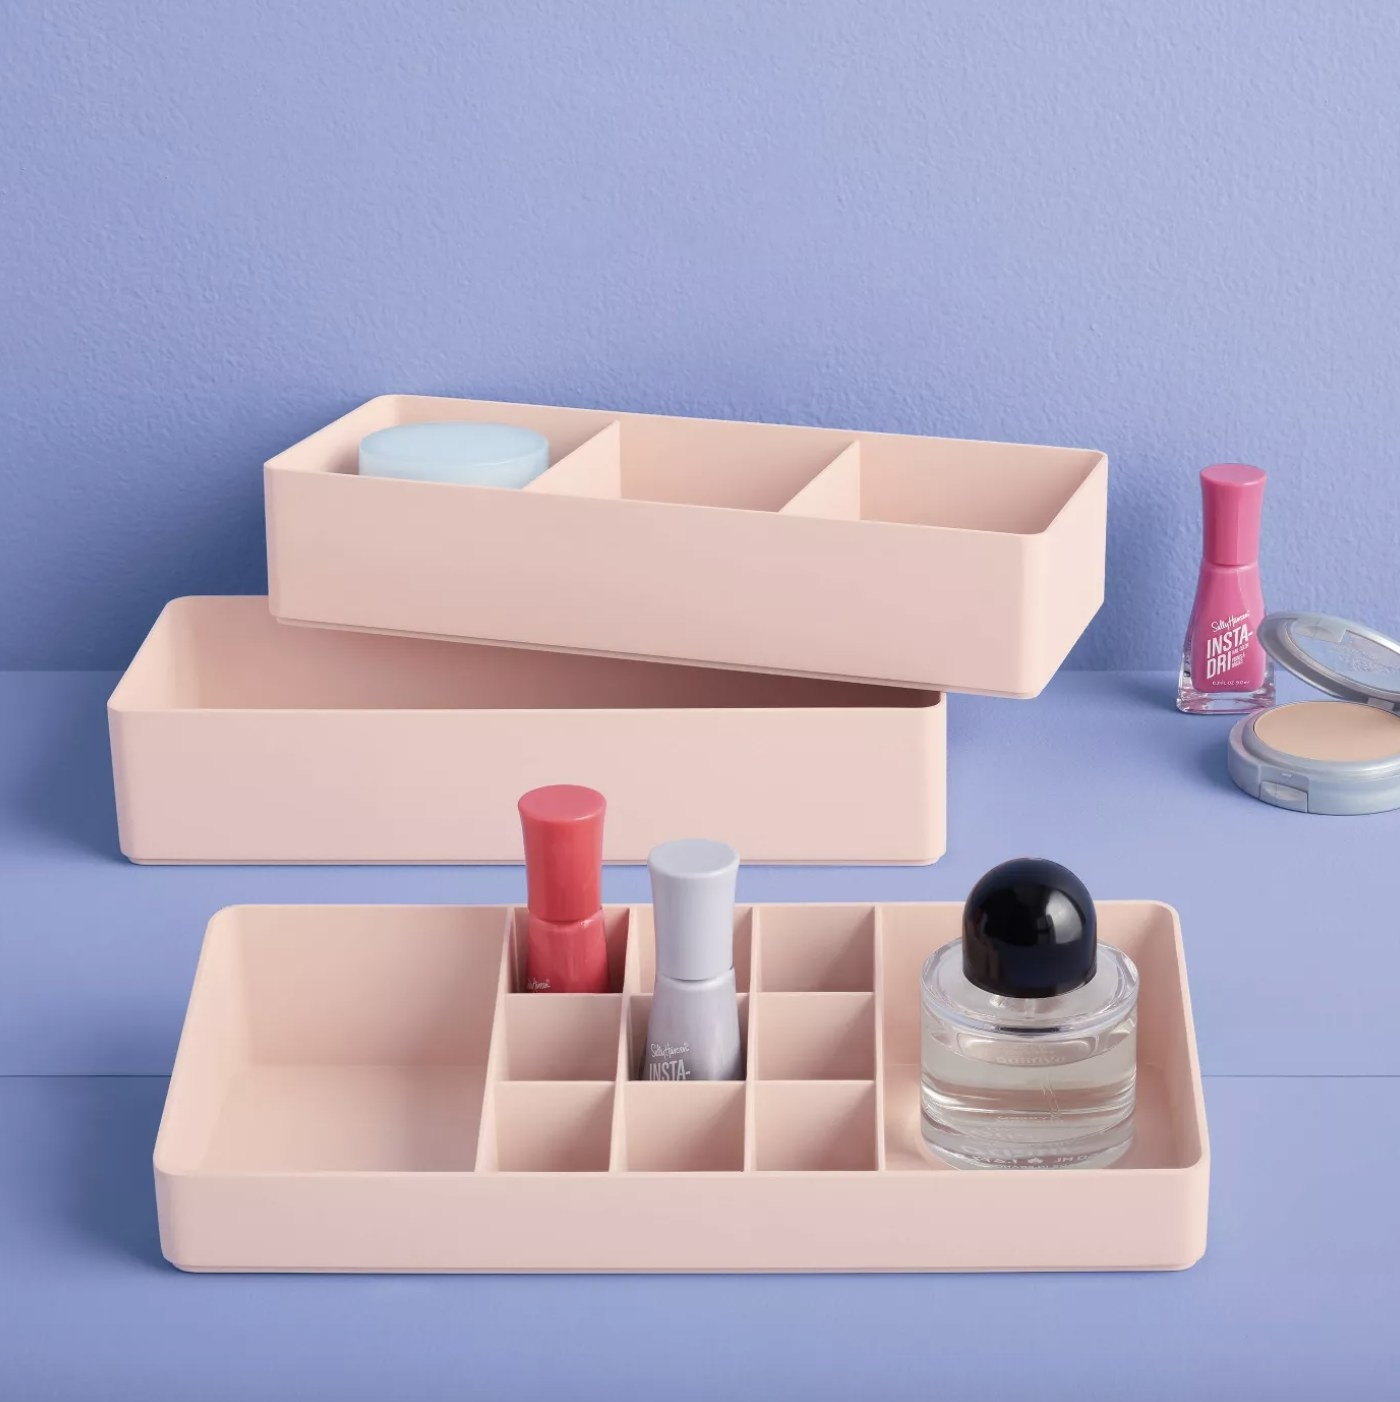 the three piece pink organizer with little dividers